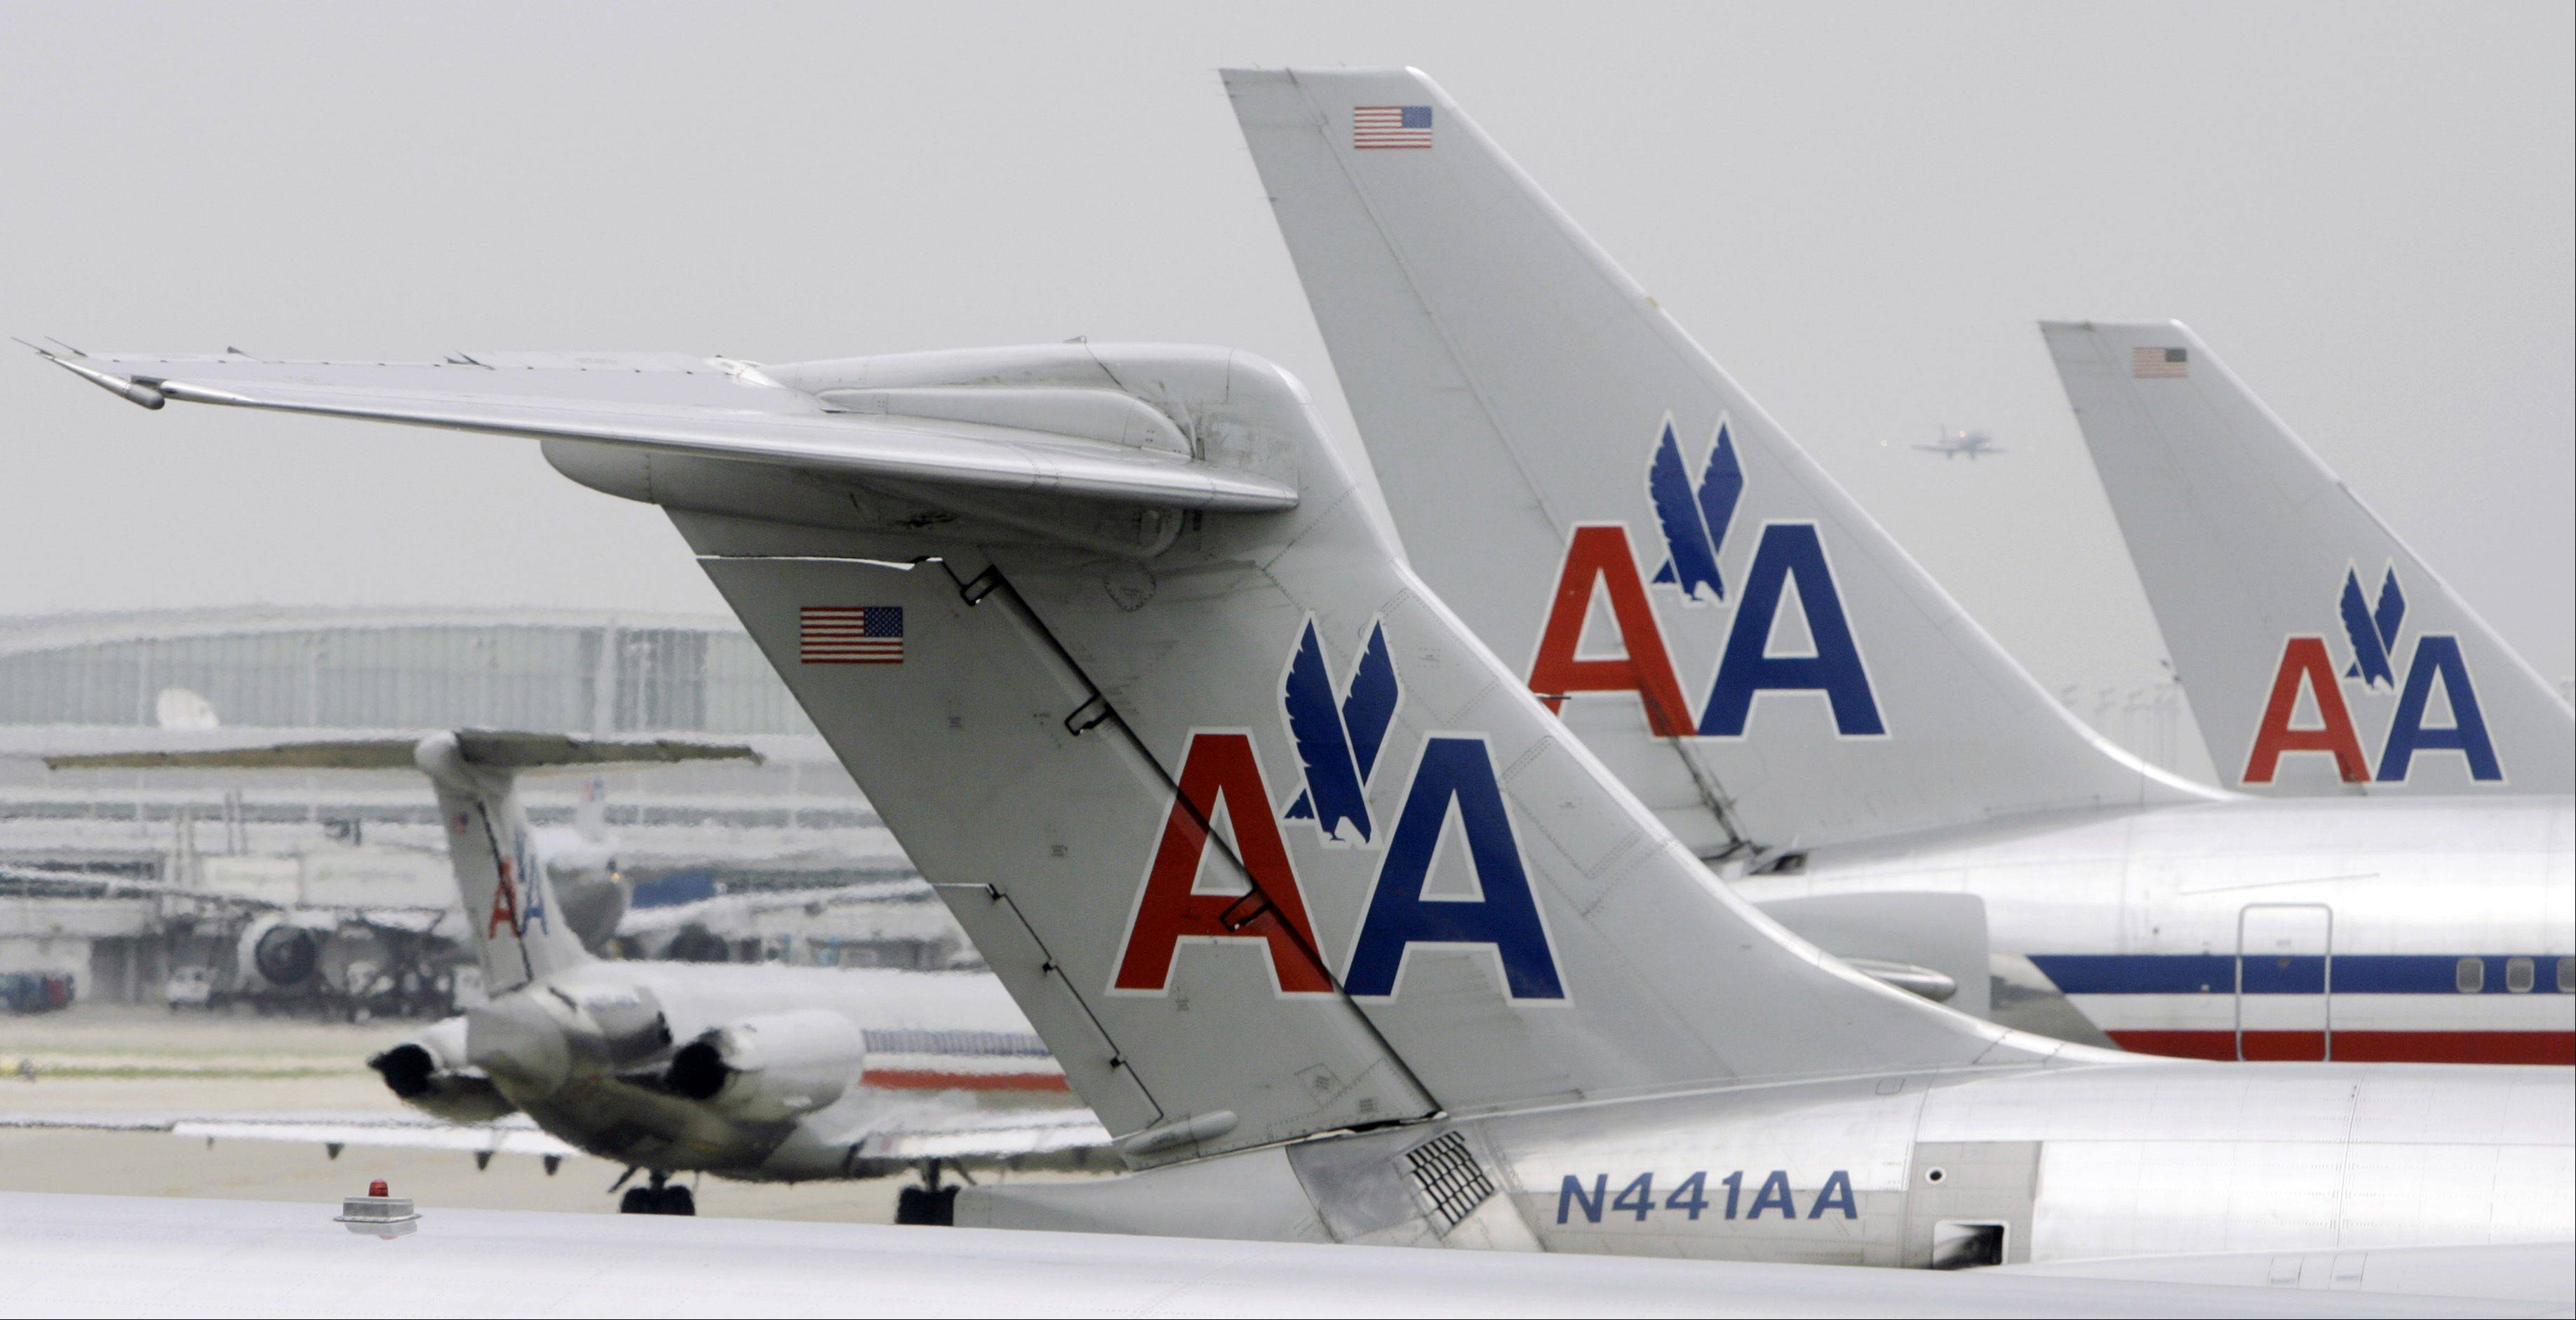 Merger talks between American Airlines and US Airways have heated up again, according to a report in the Wall Street Journal on Monday.